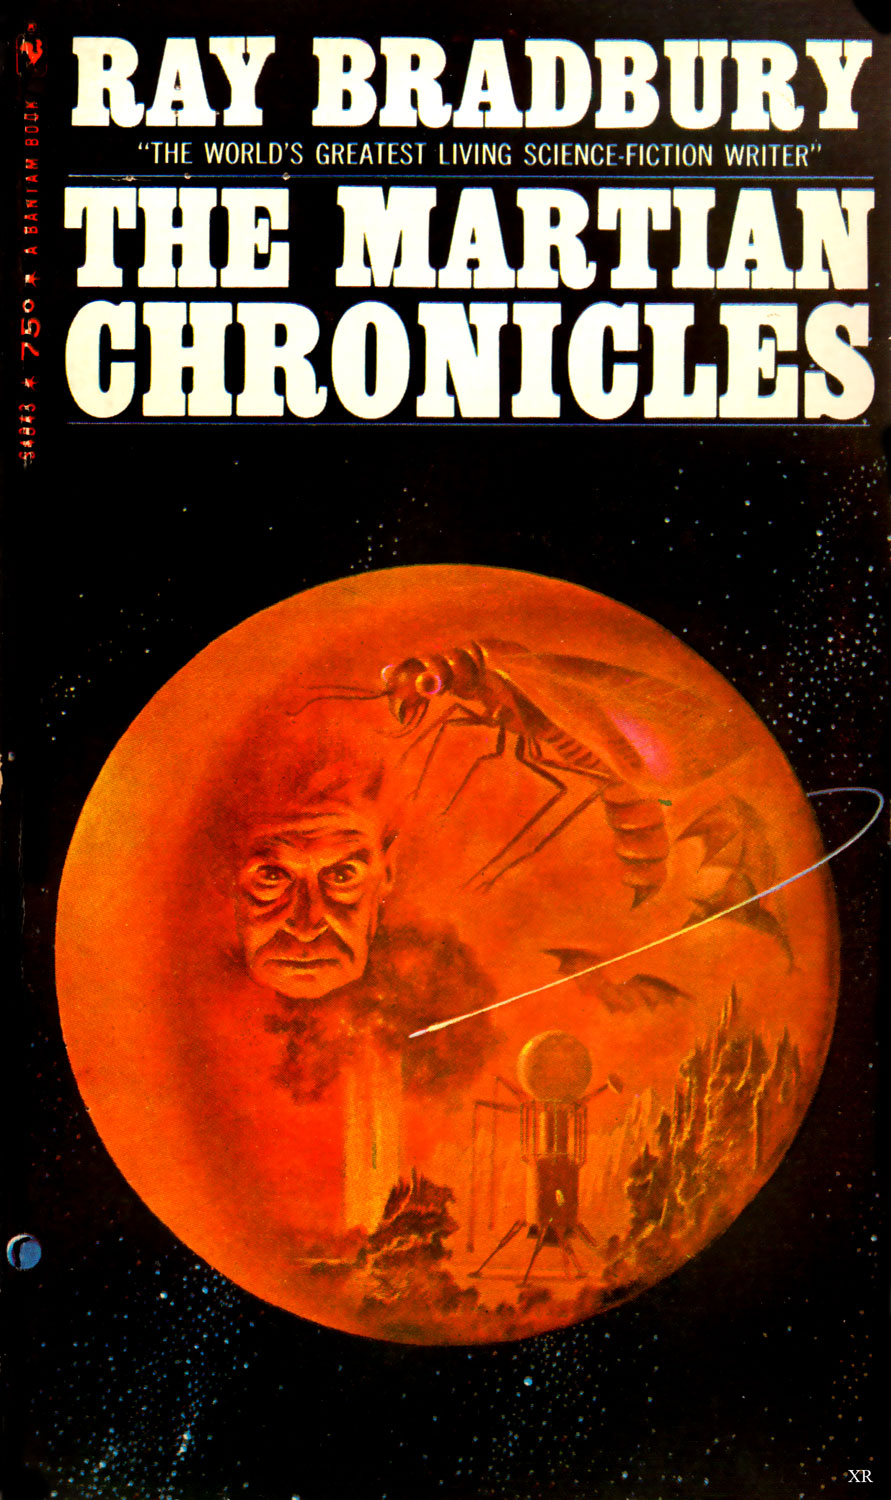 martian chronicles essays Time and again, the martian chronicles urges readers to face reality rather than to retreat into illusion tweet the martian chronicles search reports and essays.